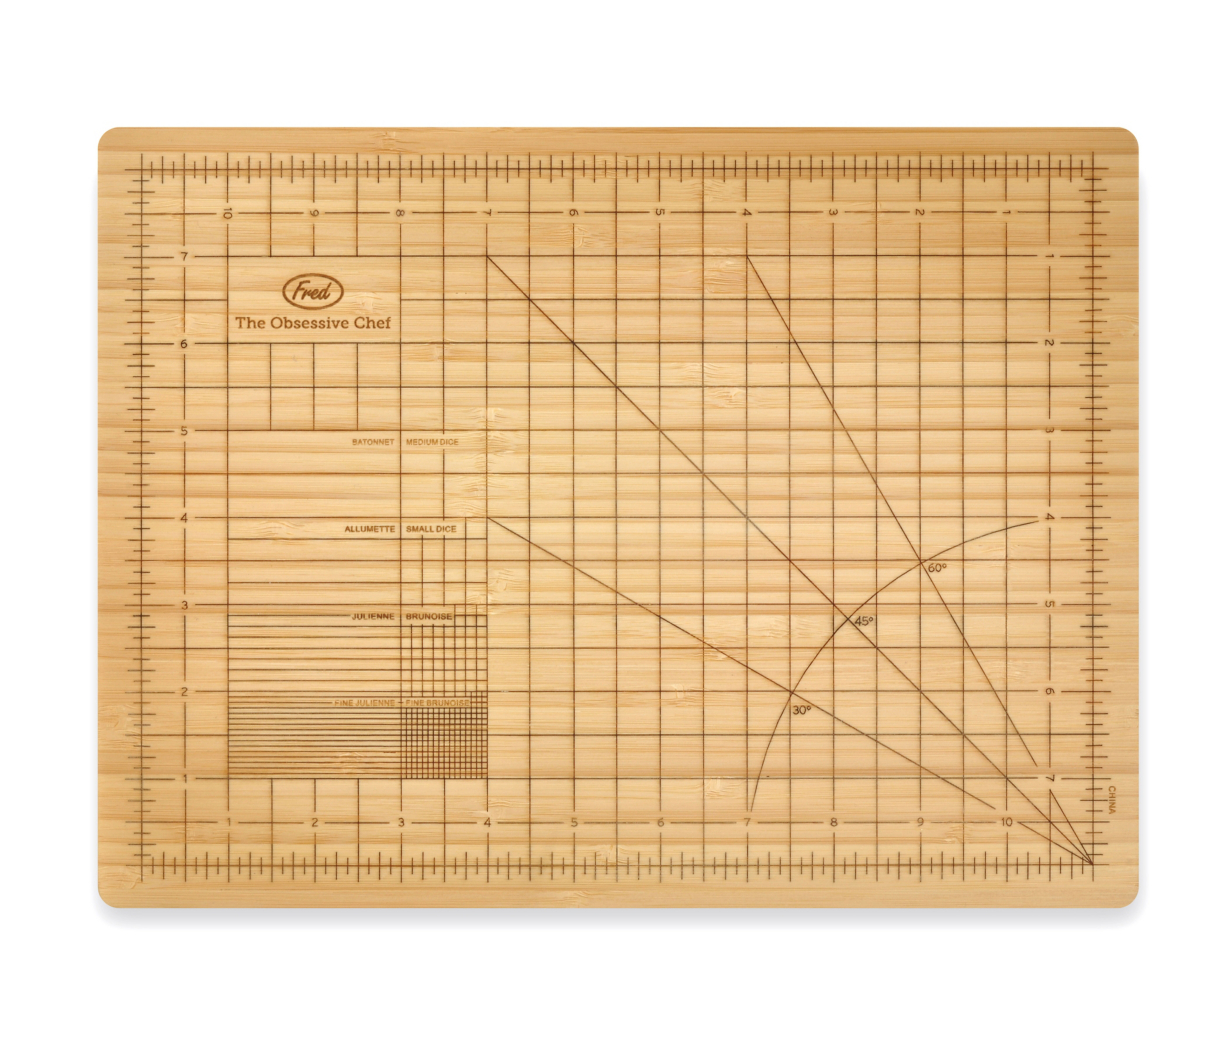 Fred The Obsessive Chef Chopping Board - £10